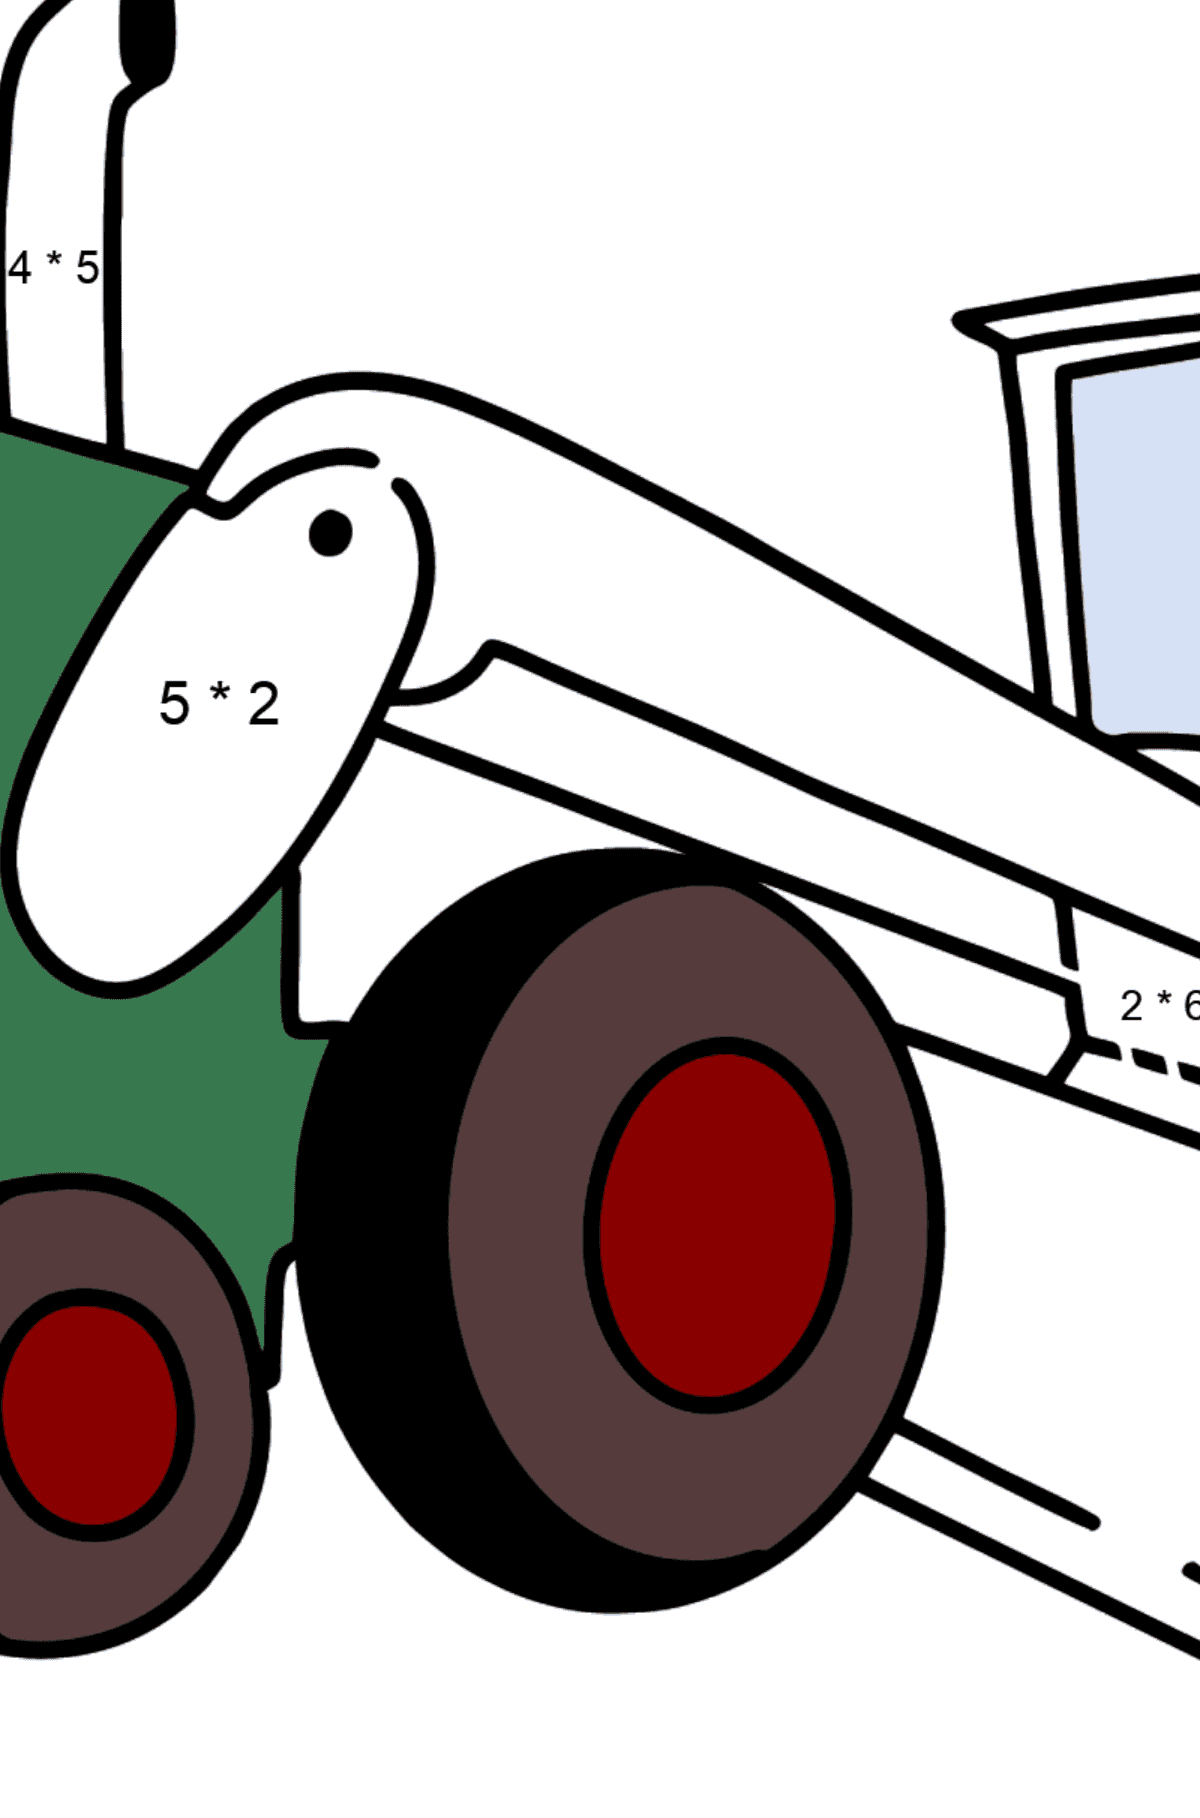 Tractor Grader coloring page - Math Coloring - Multiplication for Kids